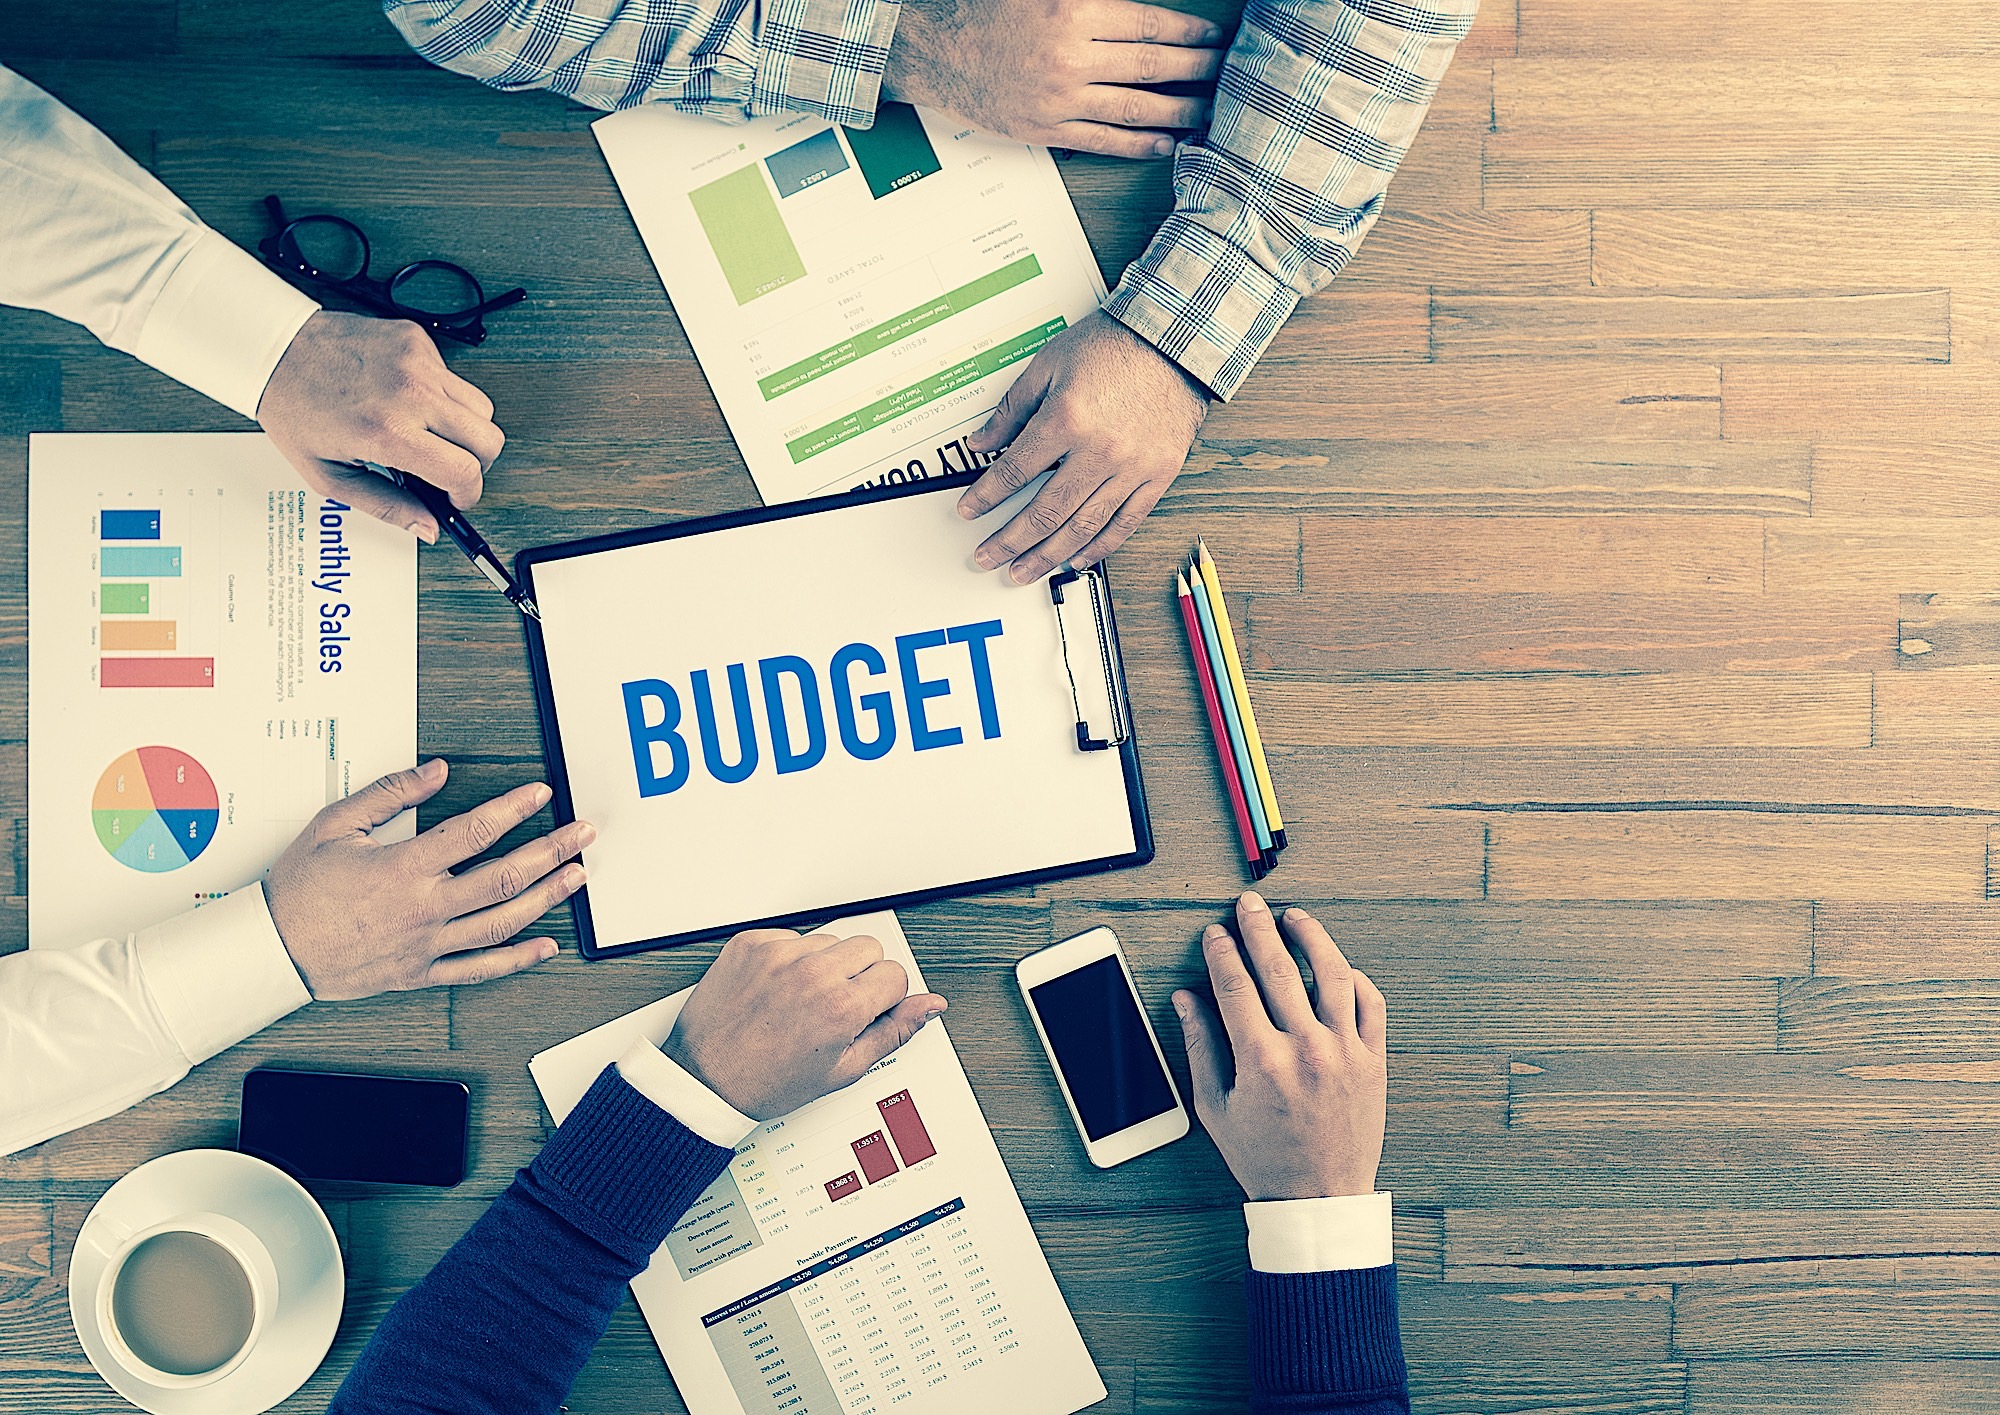 Owner Builder Budget Spreadsheet Regarding Downloadable] Business Budget Template For The Financially Savvy